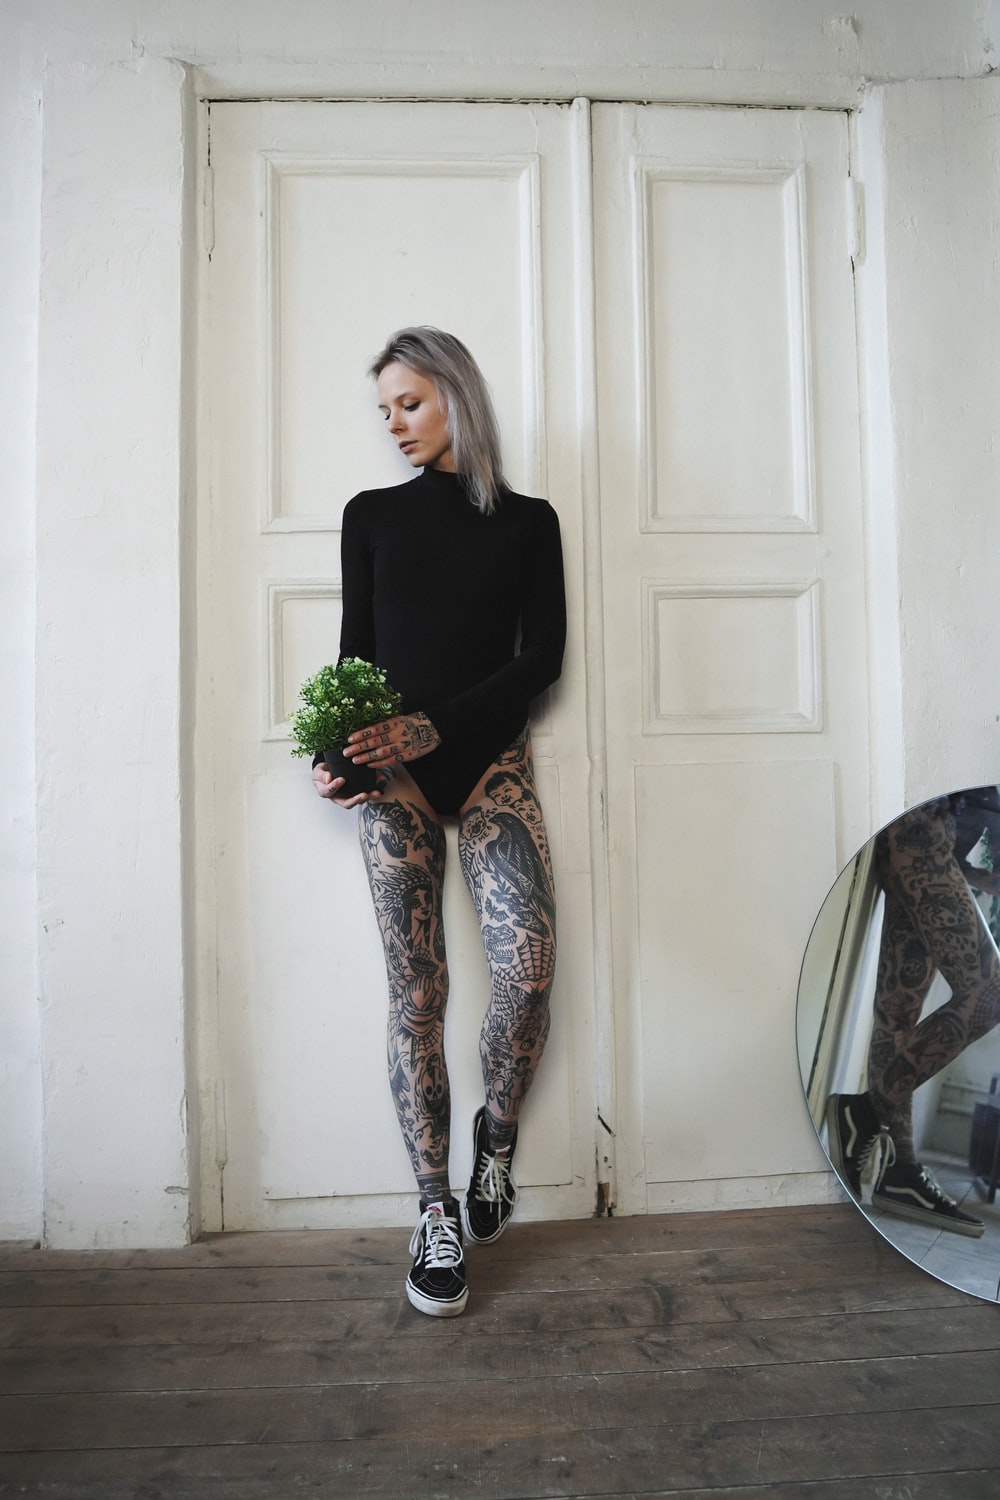 woman in black long sleeve shirt and gray pants holding bouquet of flowers